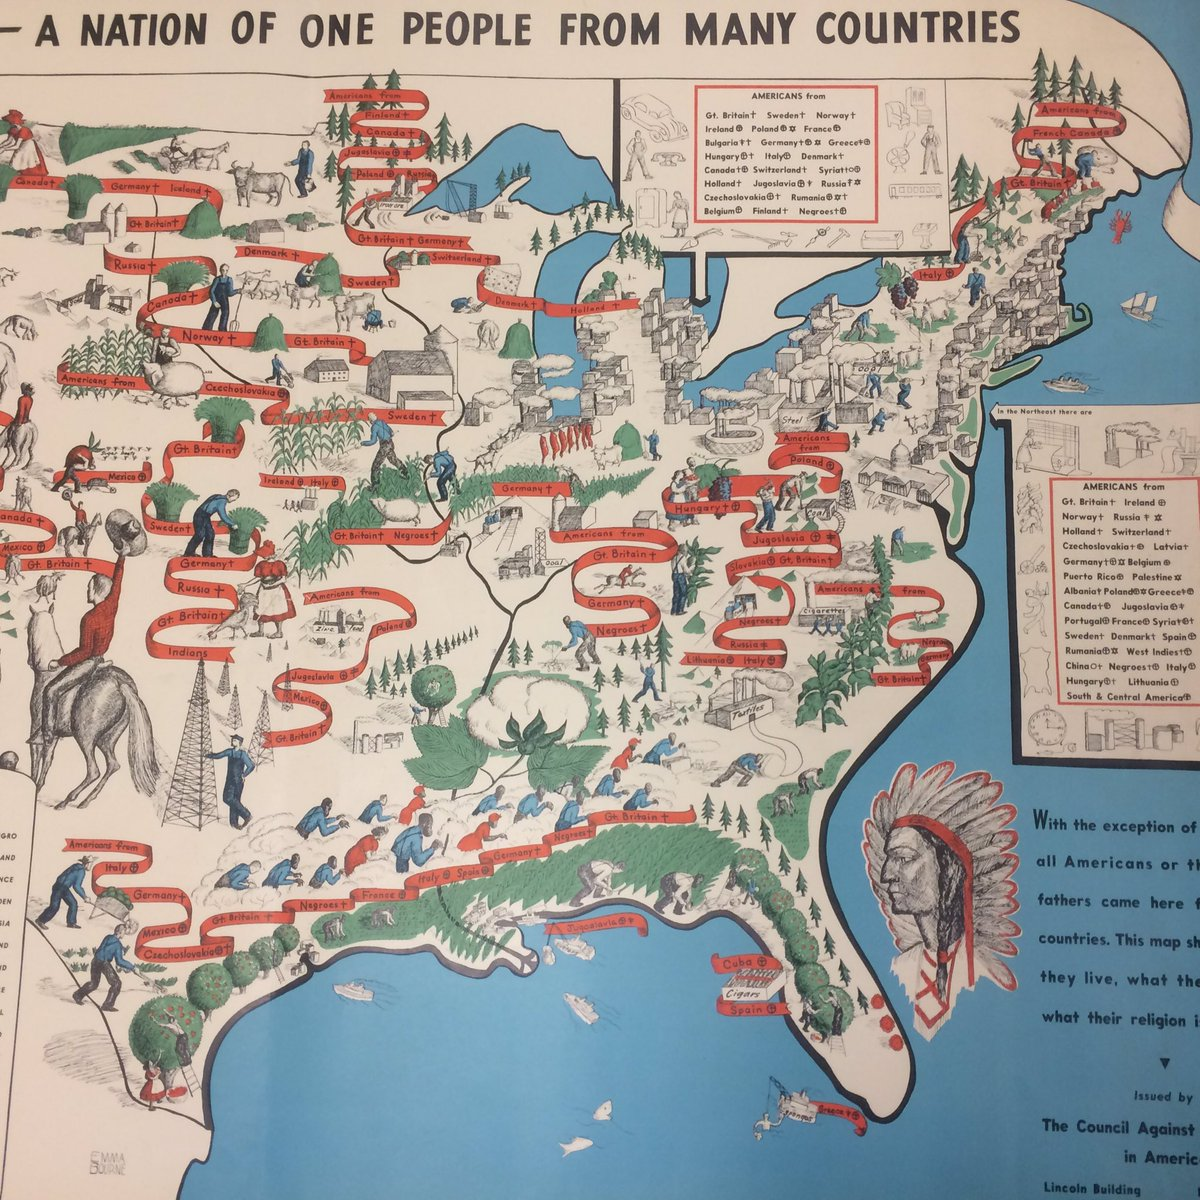 Harvardmapcollection On Twitter Immigration In Us History Sincere Fraught 1940 Map America A Nation Of One People From Many Countries More